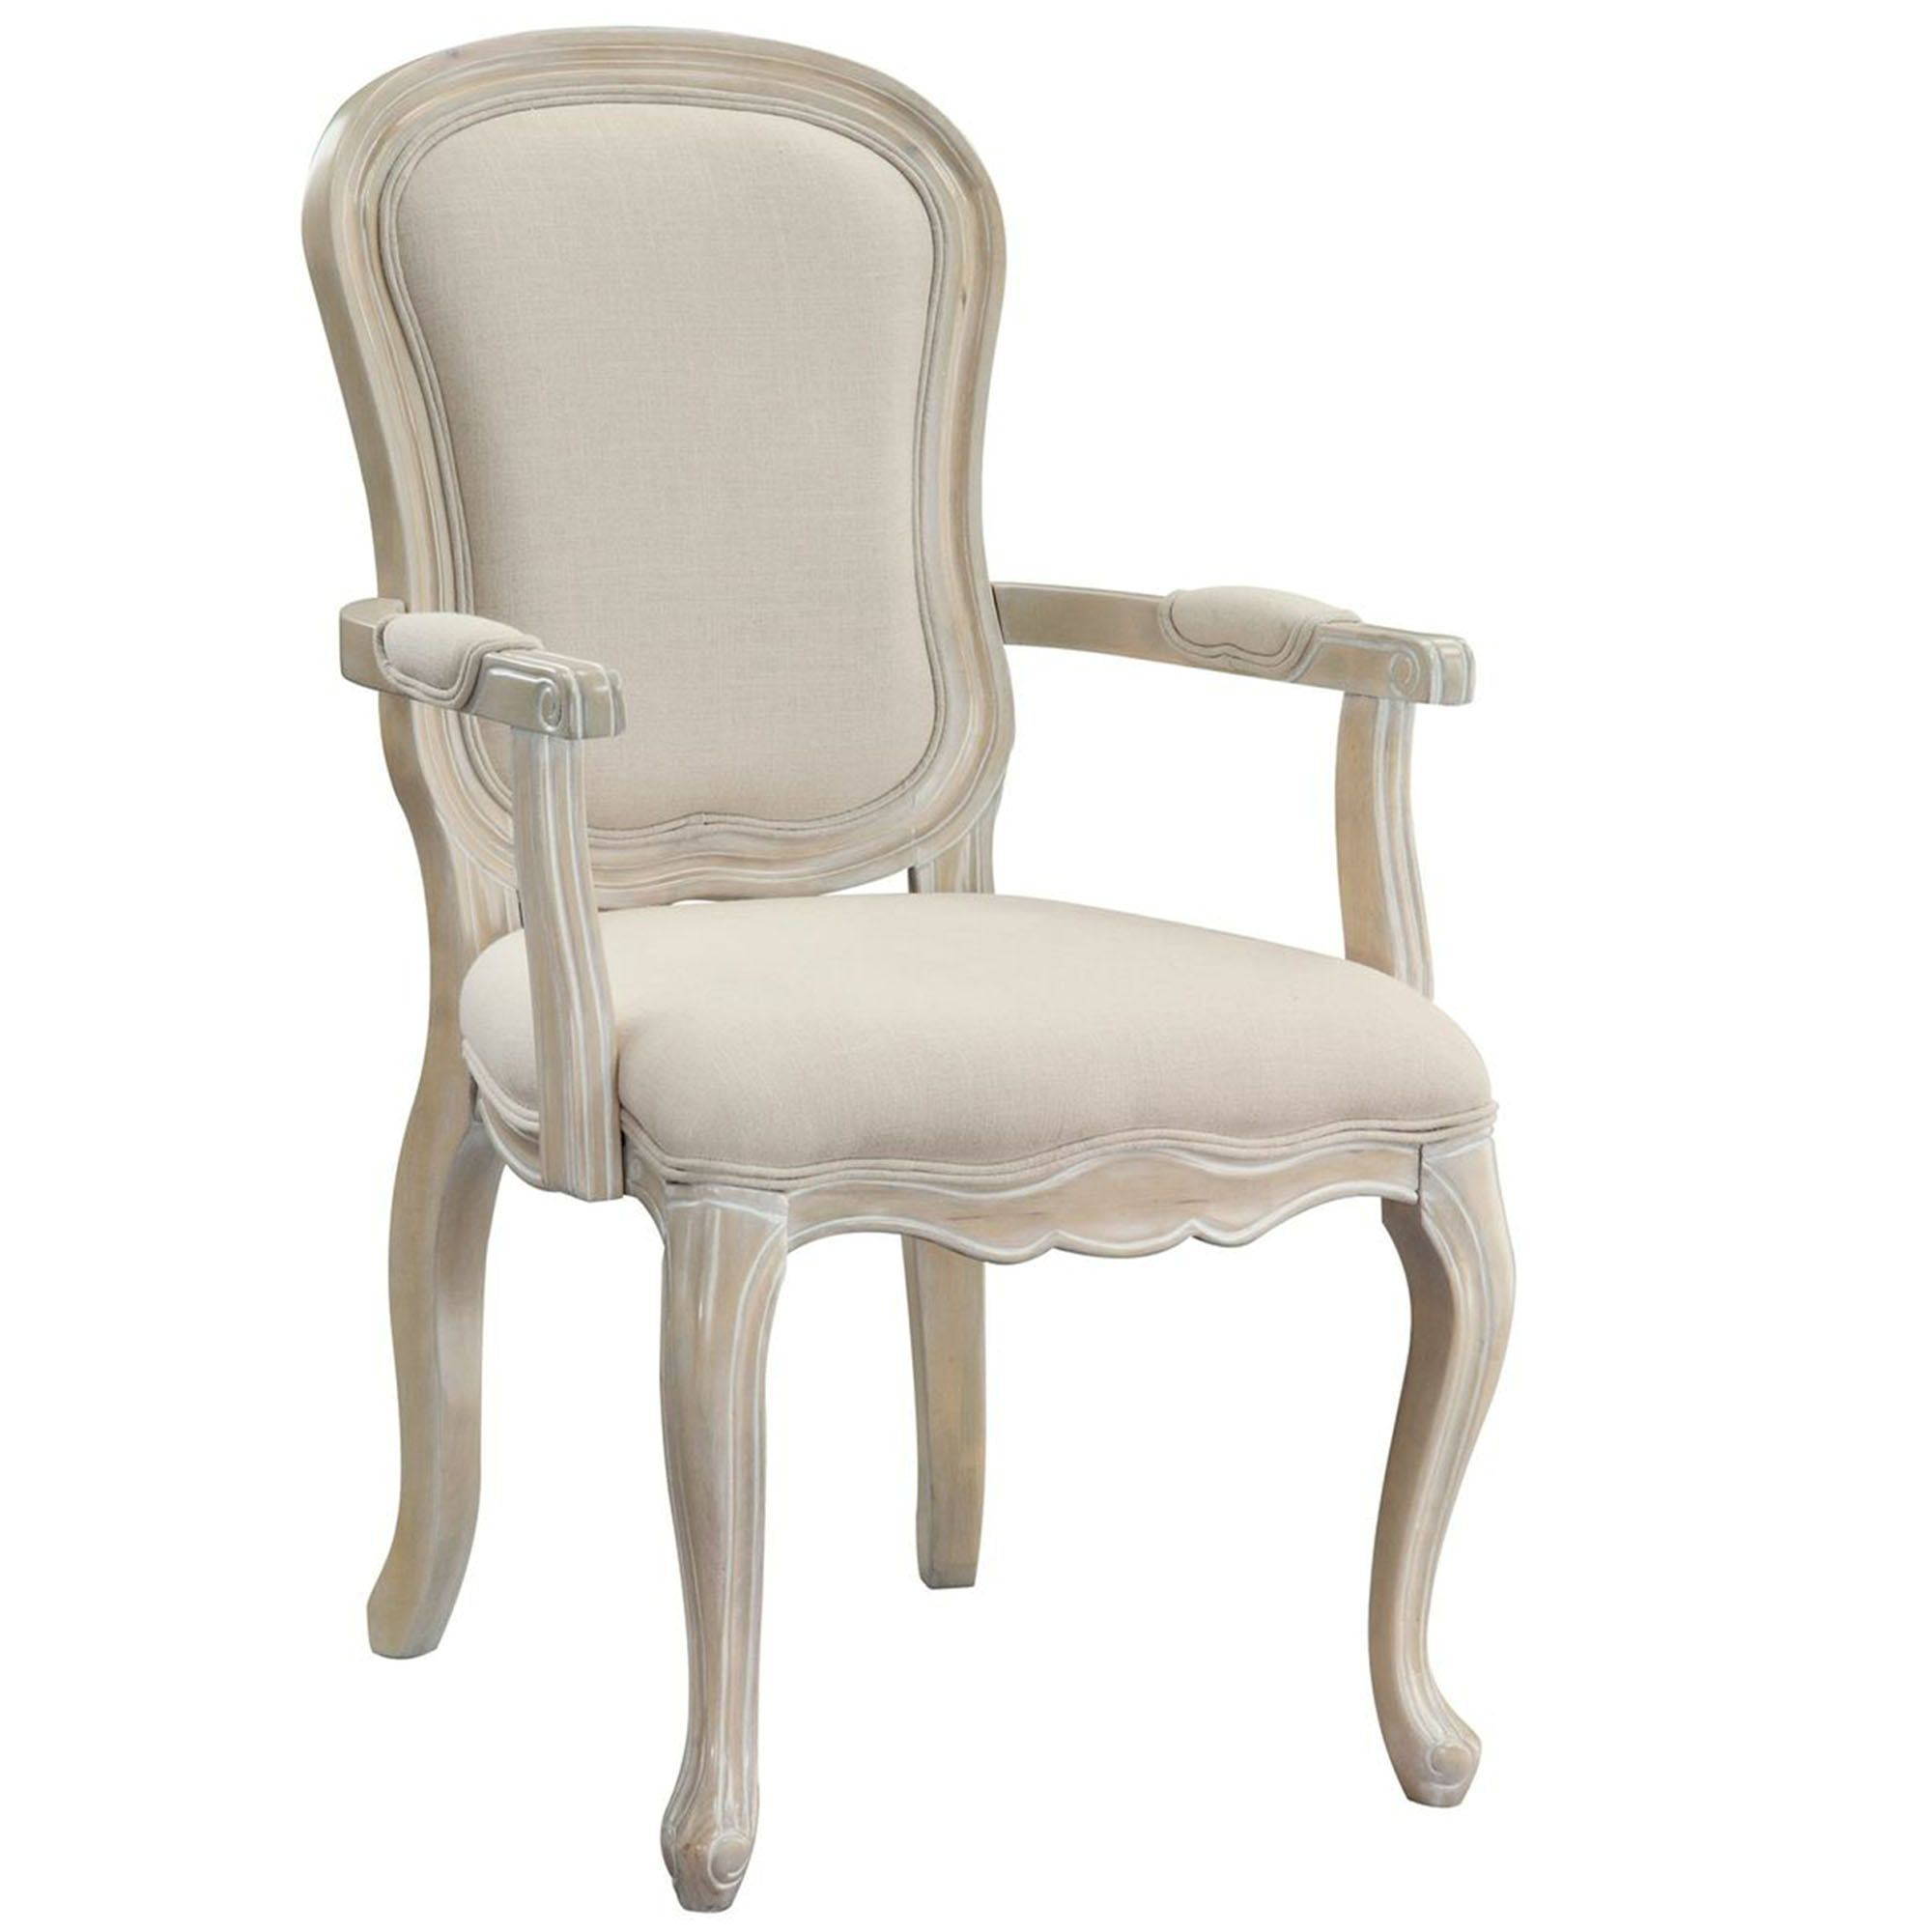 Antique Accent Chairs Evelyn Upholstered Accent Chair